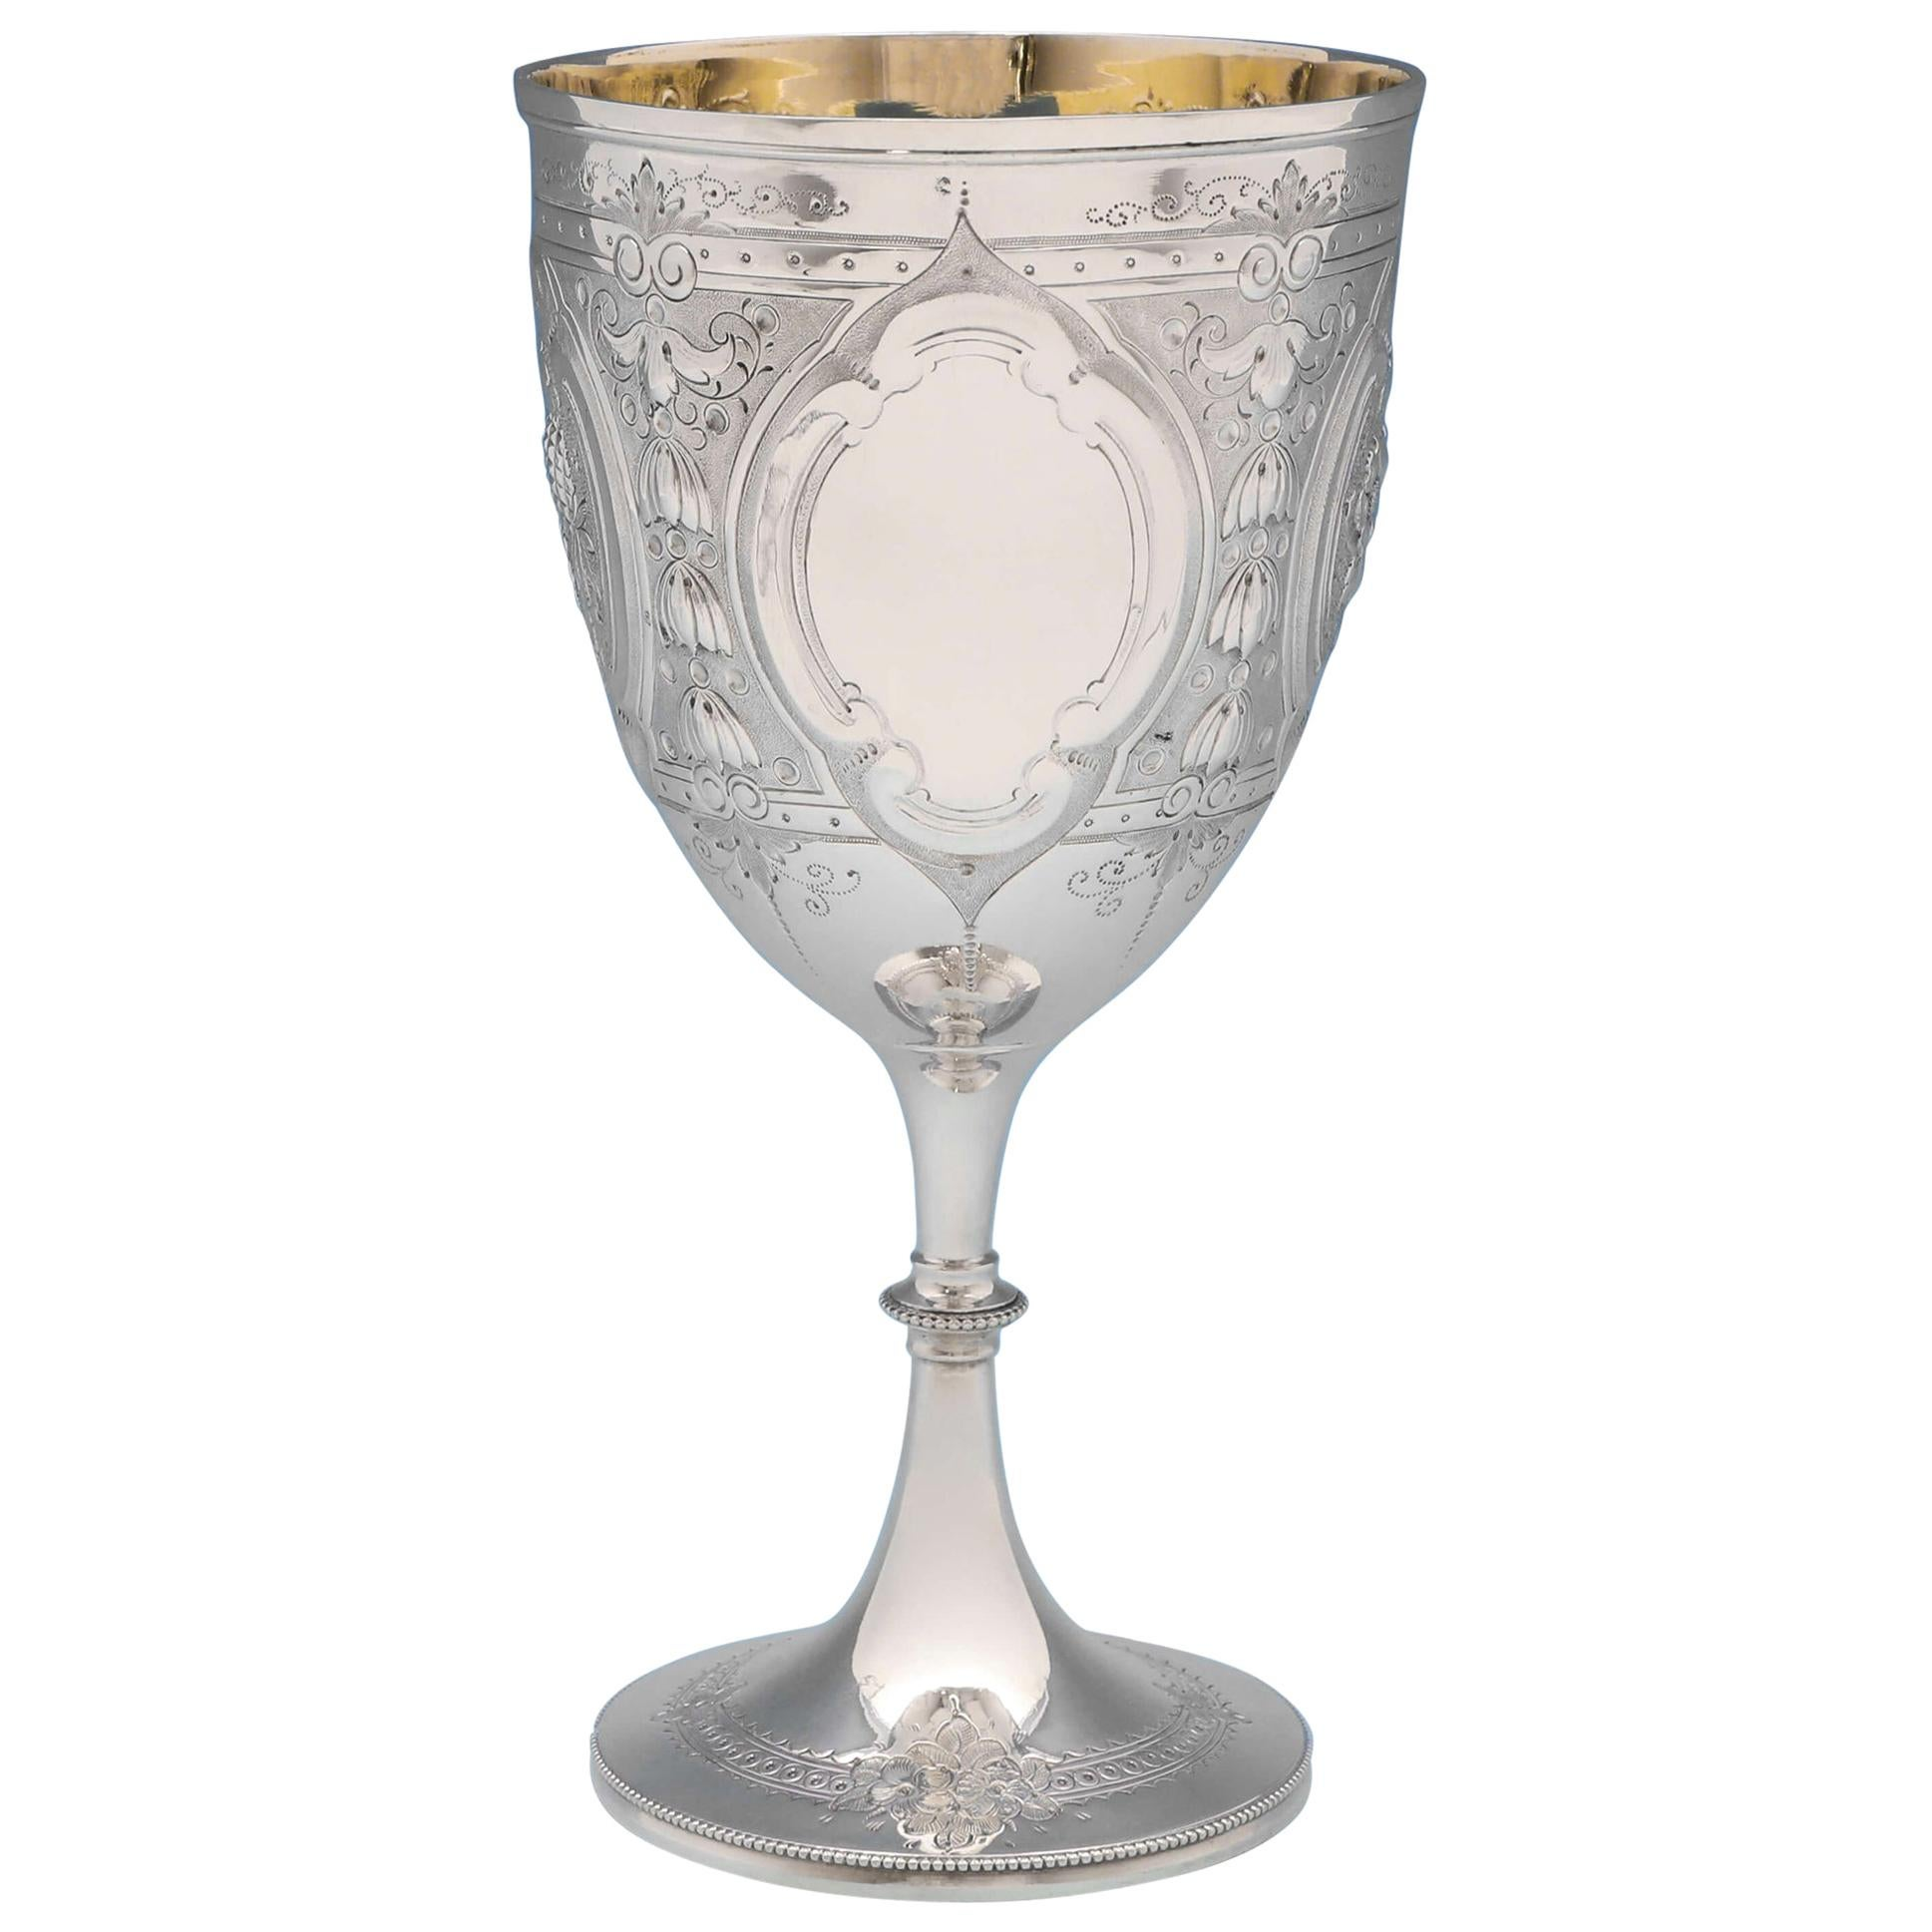 Antique Victorian Sterling Silver Goblet by Henry Wilkinson & Co. Sheffield 1876